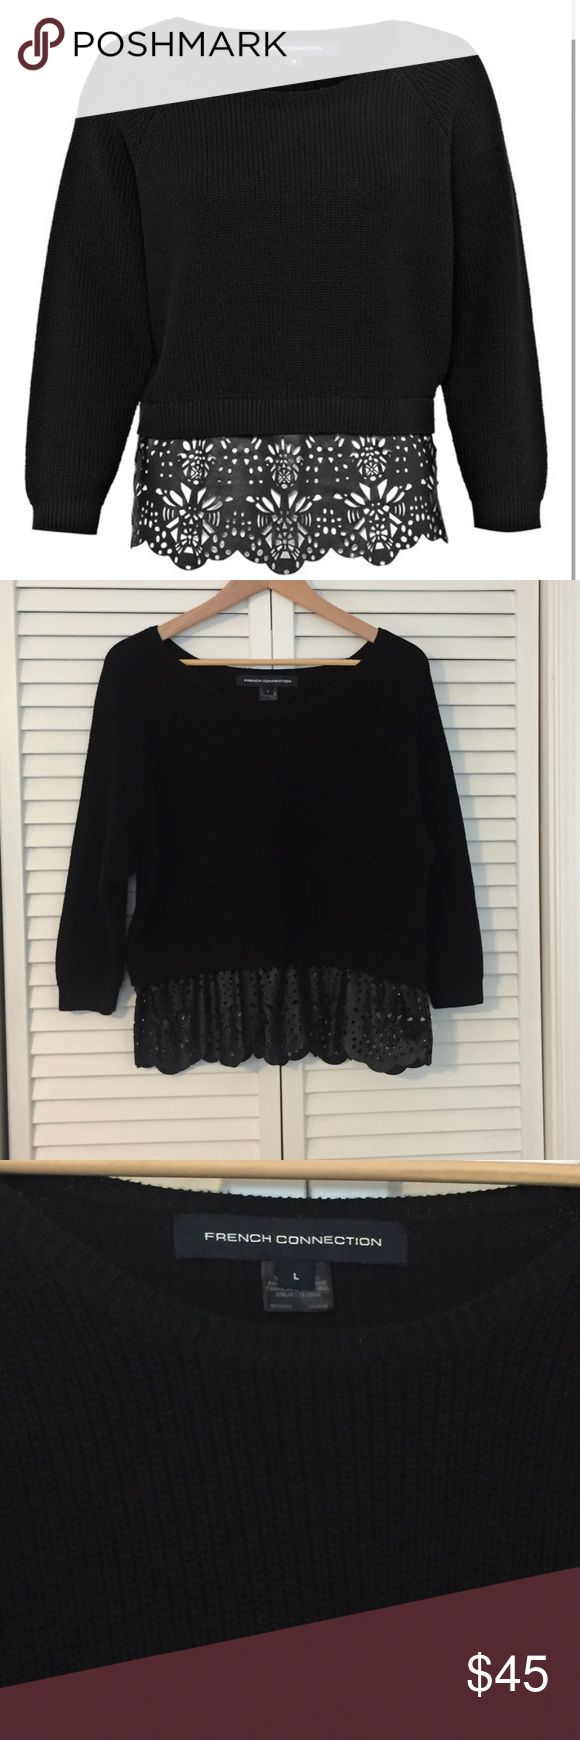 """French Connection leather peplum sweater Chic black sweater with faux leather peplum. Sweater is 100% cotton and faux leather peplum has laser cut design. EUC! Size is Large. Laying flat is approx 21"""" from back of neck to bottom of peplum. Bust is approx 21"""" as well. French Connection Sweaters"""